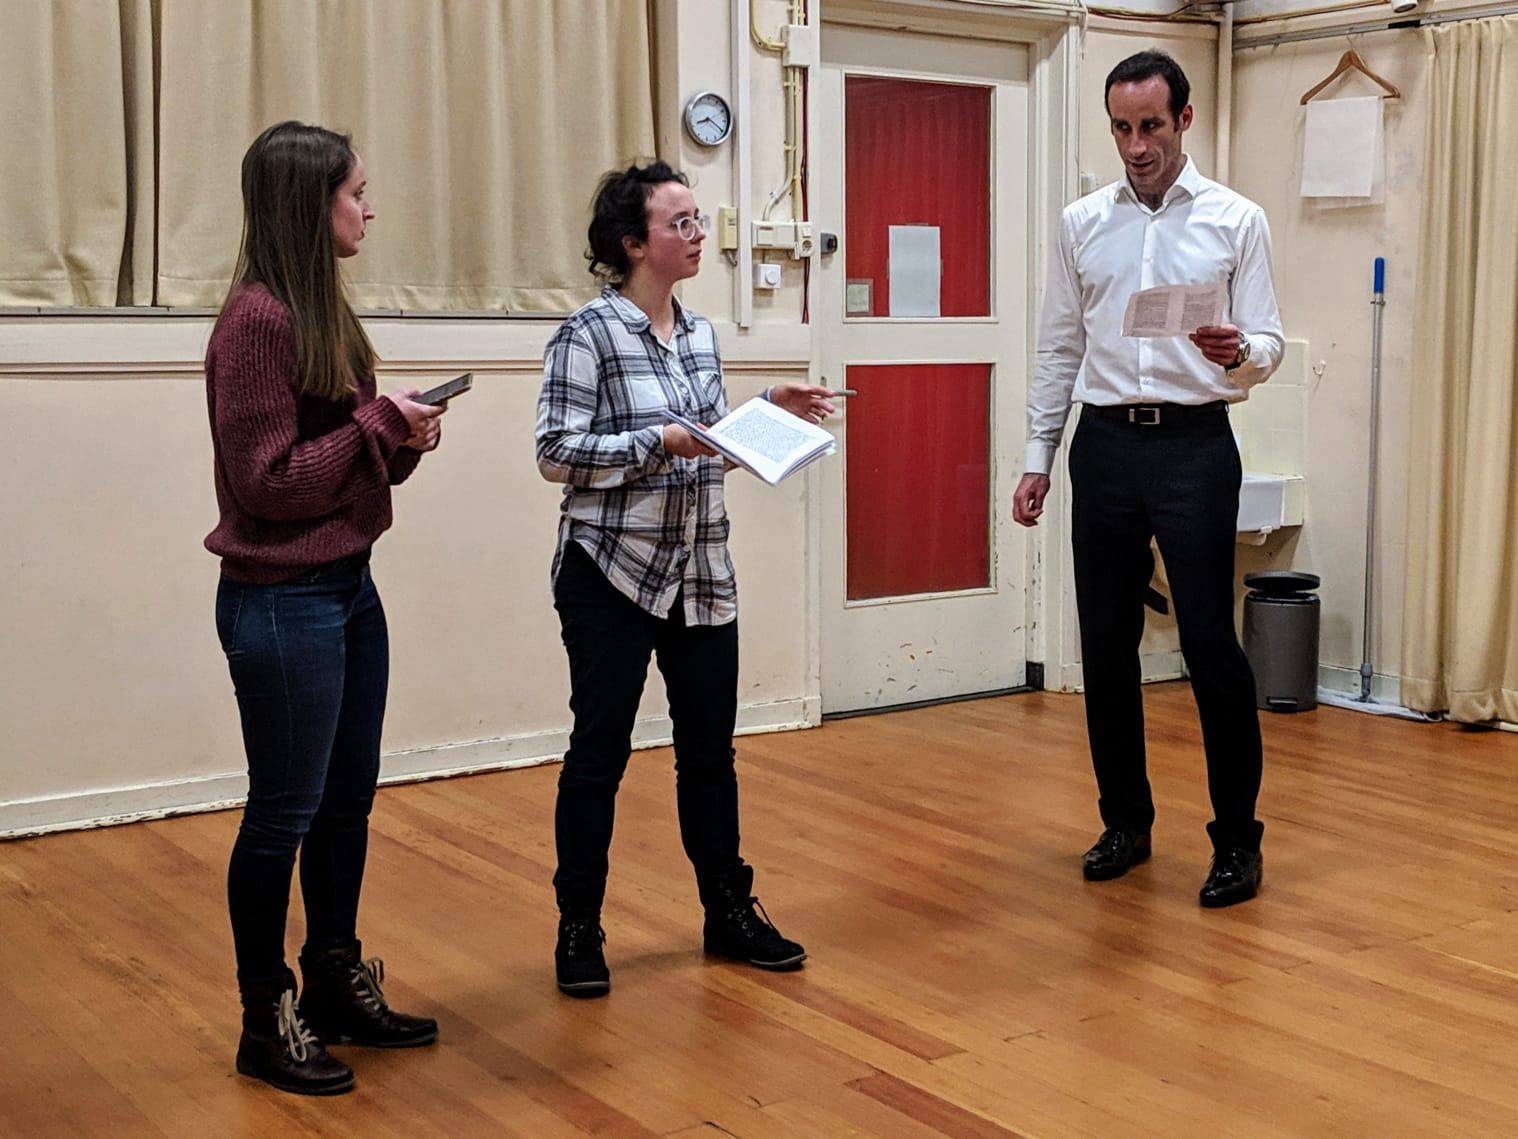 Acting Class Act Attack. Three people, two women one man, read lines. The two women look toward the man.